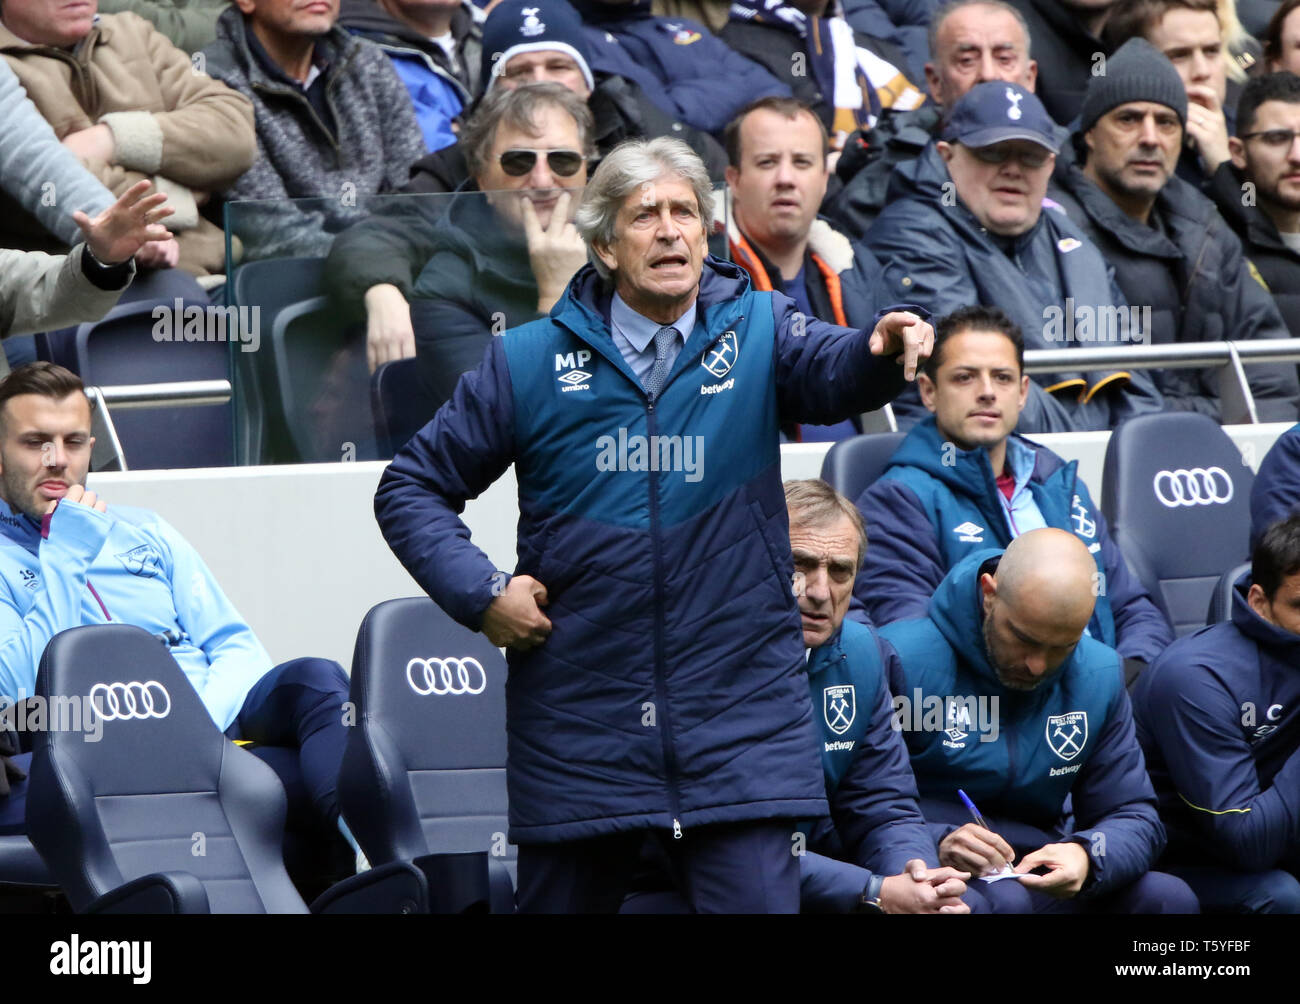 London, UK. 27th Apr 2019. Manuel Pellegrini (West Ham manager) at the Tottenham Hotspur v West Ham United English Premier League match, at The Tottenham Hotspur Stadium, London, UK on April 27, 2019. **Editorial use only, license required for commercial use. No use in betting, games or a single club/league/player publications** Credit: Paul Marriott/Alamy Live News - Stock Image